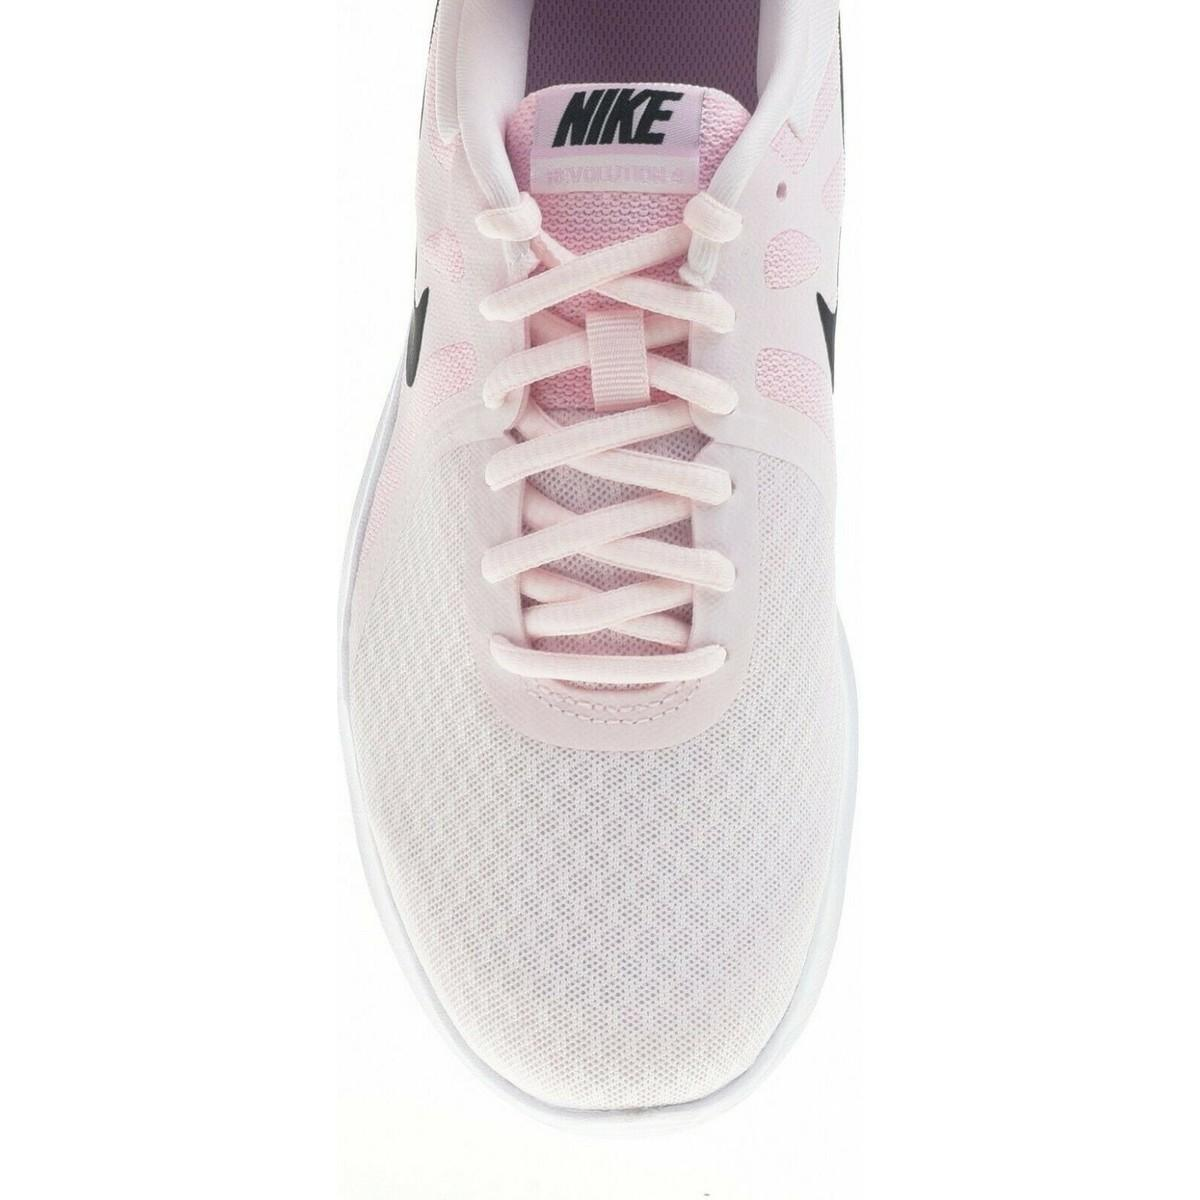 8468f00fafd Nike Wmns Revolution 4 Eu Aj3491 Women s Shoes (trainers) In Pink in ...